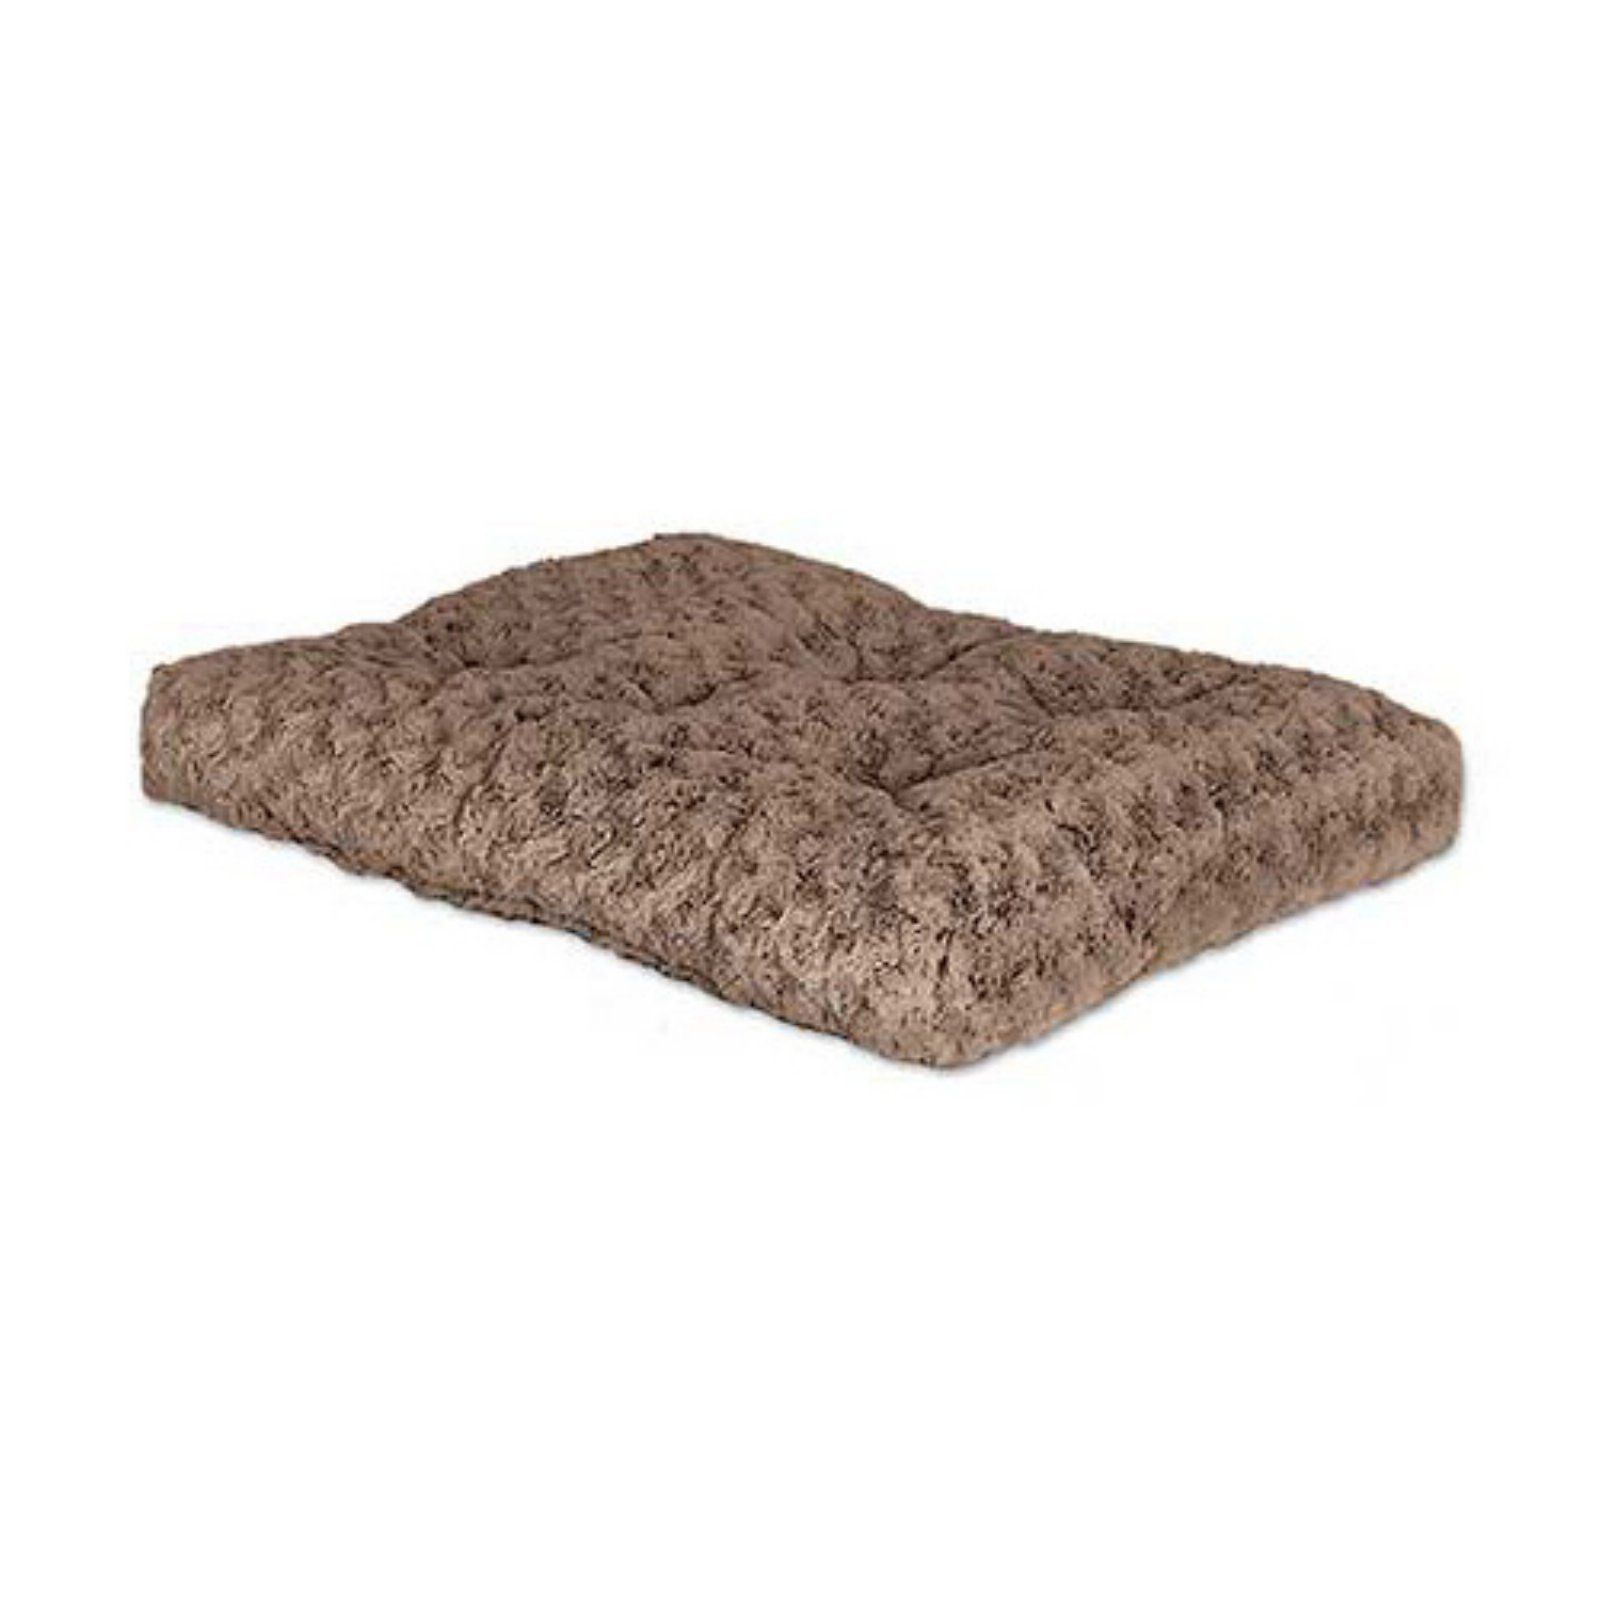 Midwest Homes For Pets Ombre Mocha Swirl Plush Fur Dog Bed Ideal For Dog Crates Size 42 In Dog Bed Dog Crate Pet Beds